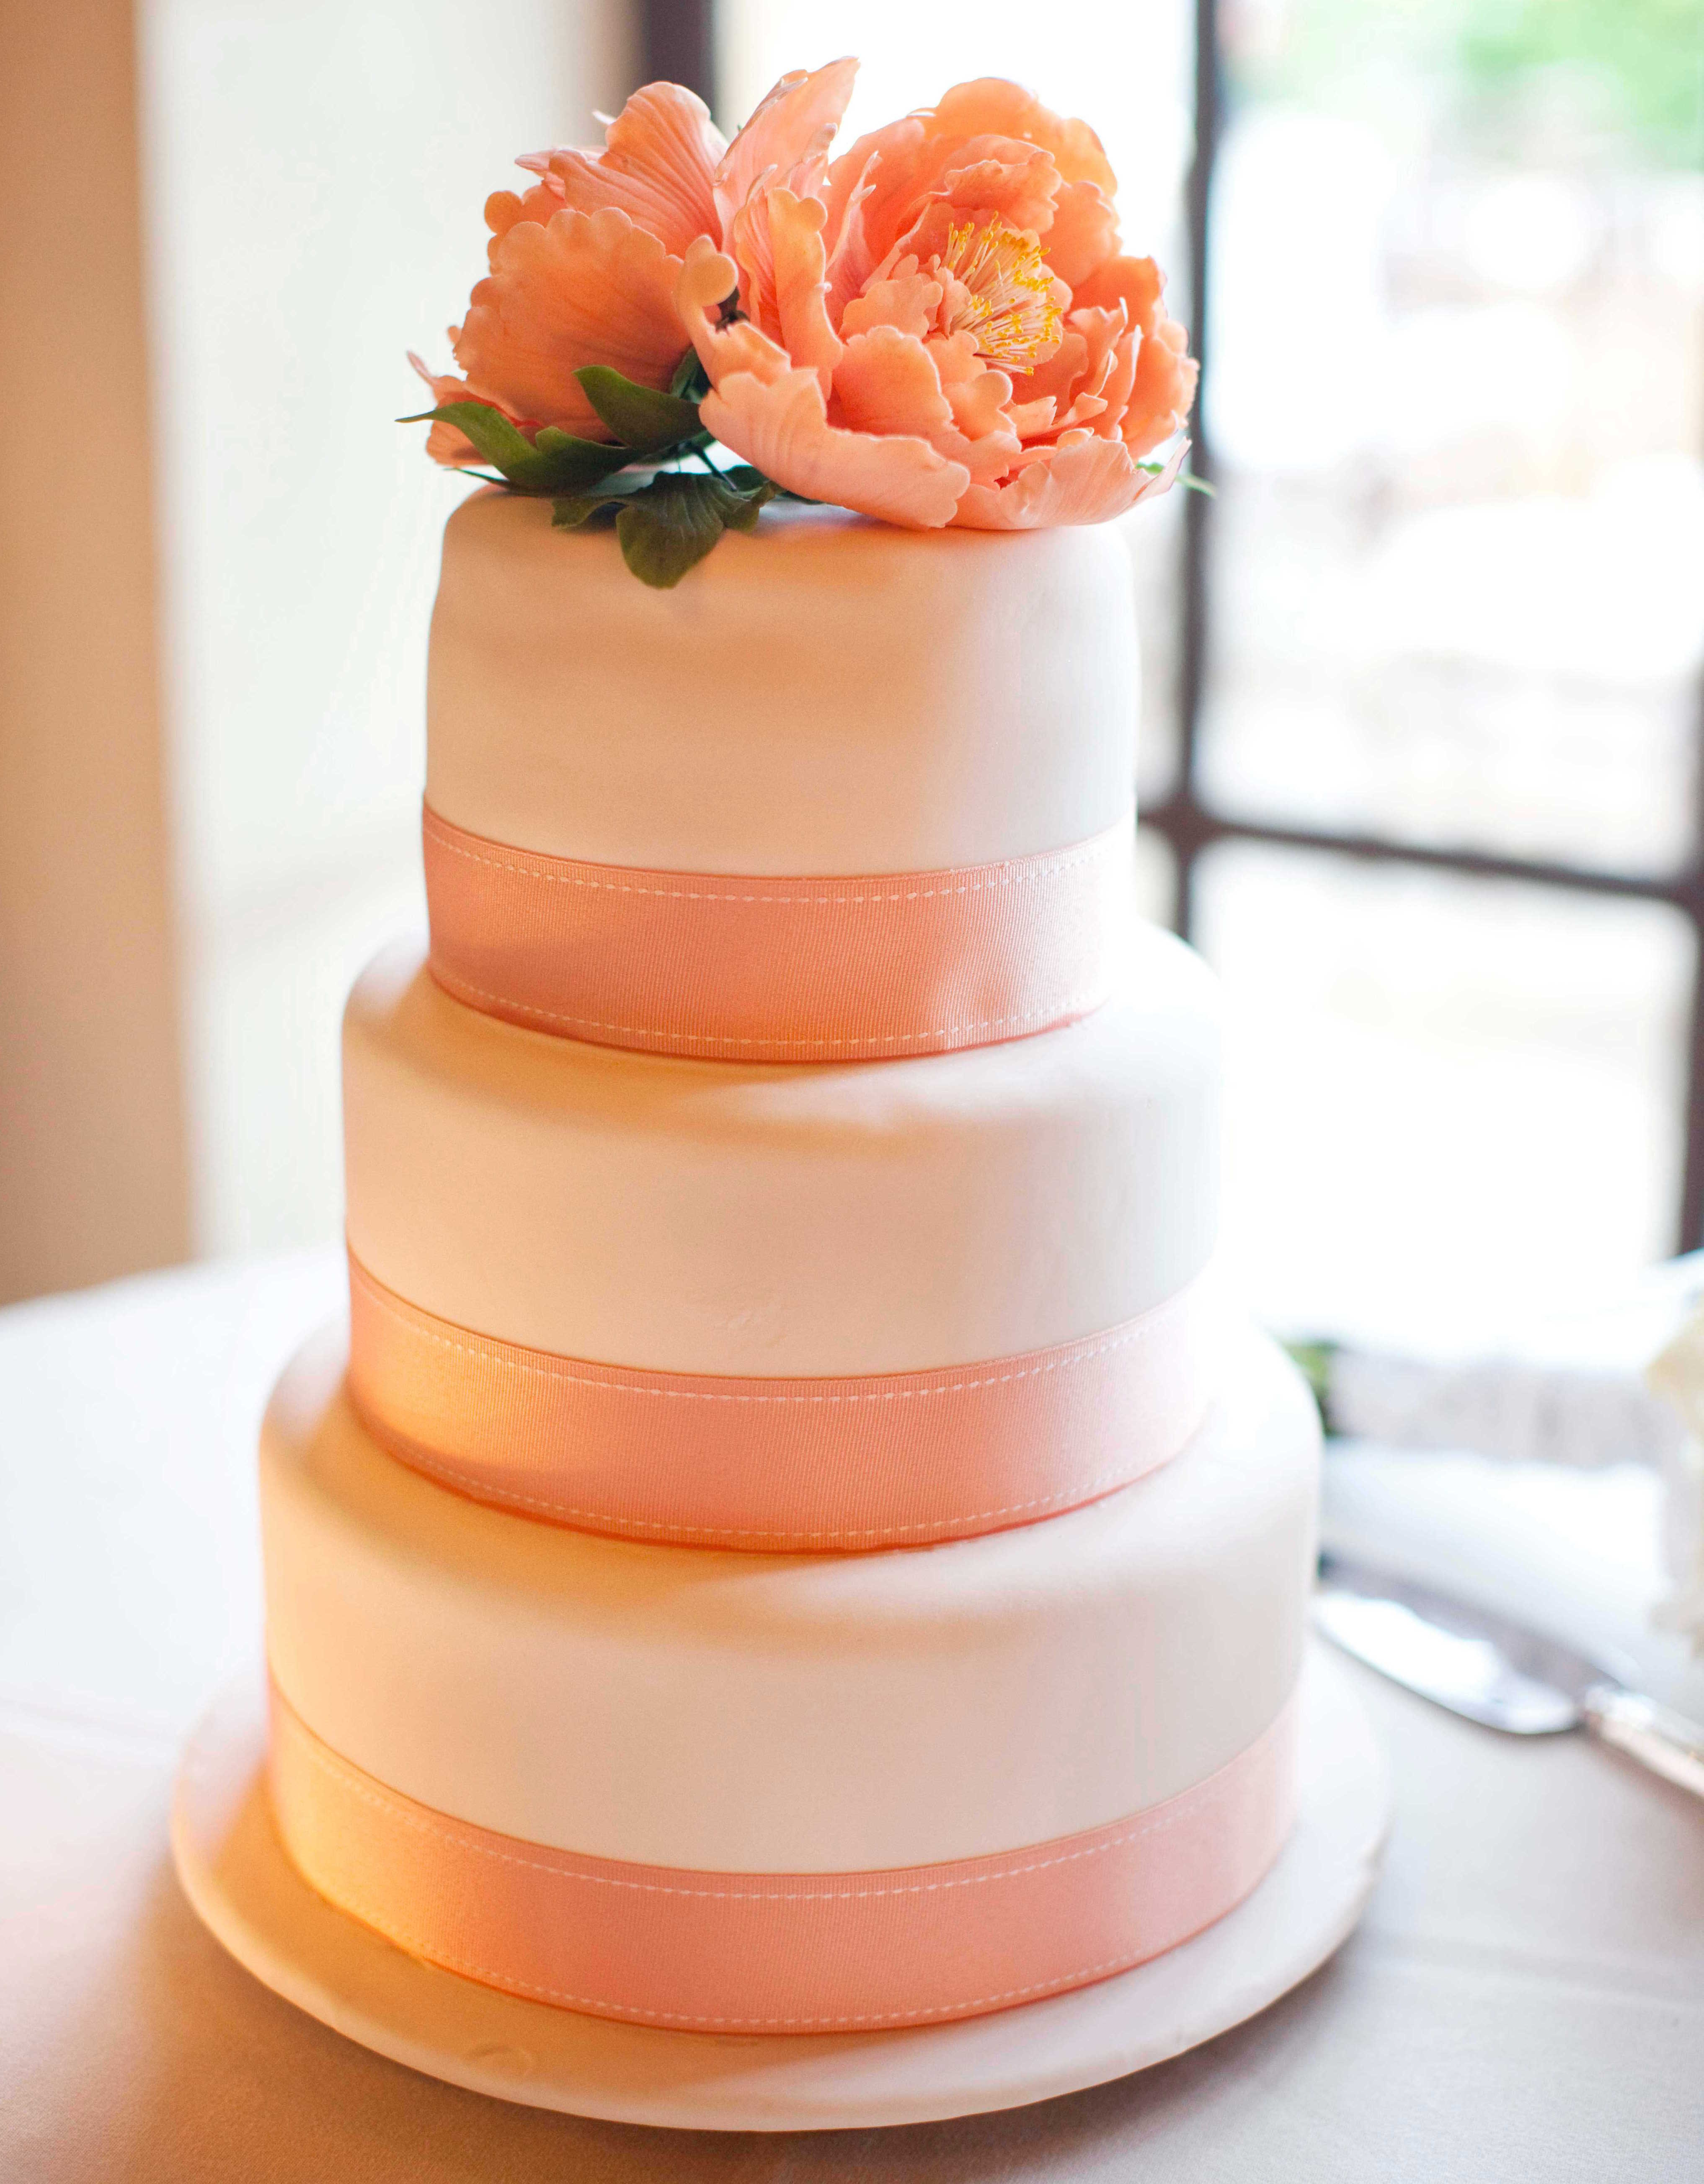 White small wedding cake with pink ribbons